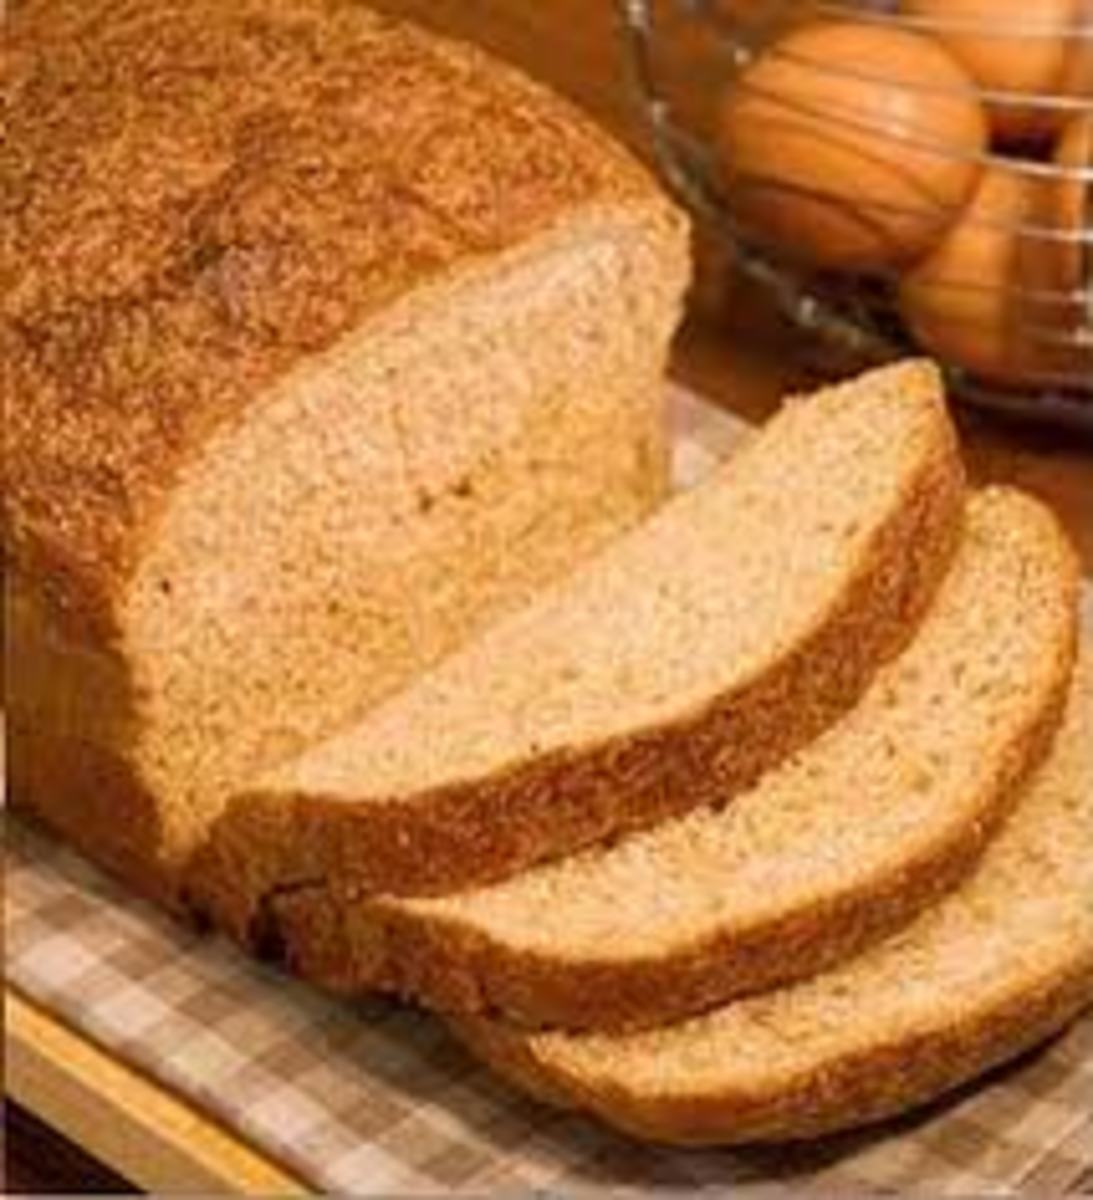 homemade-bread-guide-for-beginners-fast-and-easy-6-ingredient-bread-recipe-how-to-make-the-best-bread-at-home